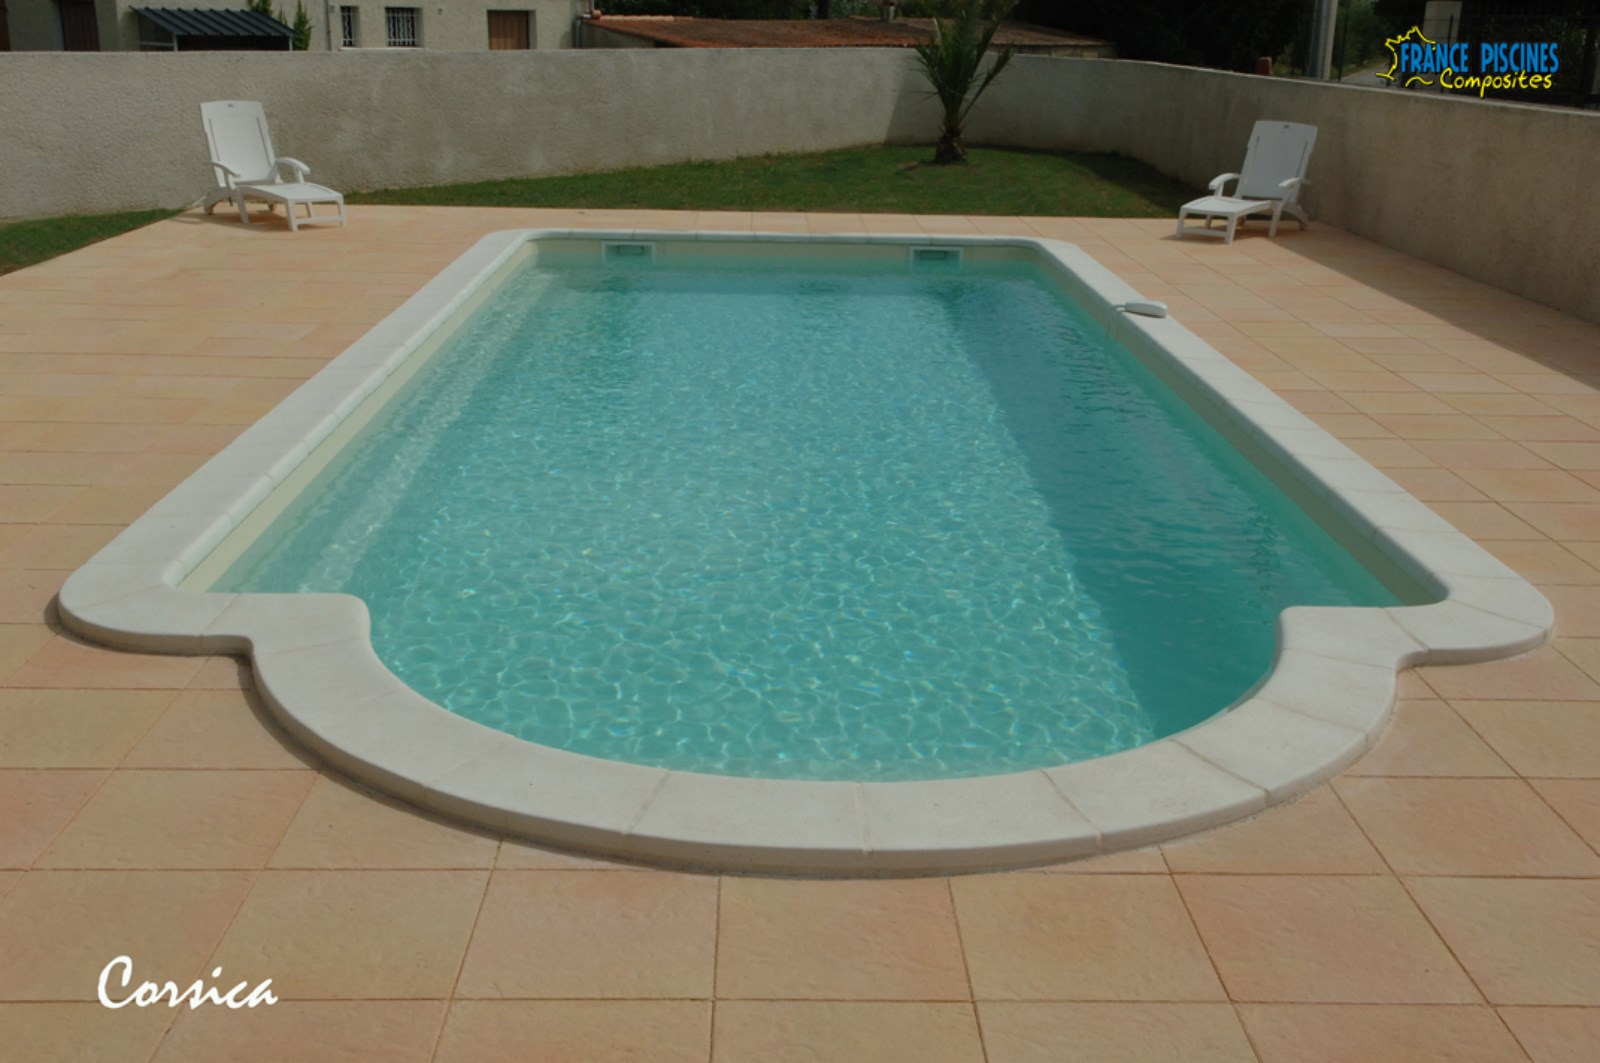 Design margelle piscine contemporaine roubaix 2322 for Piscine roubaix